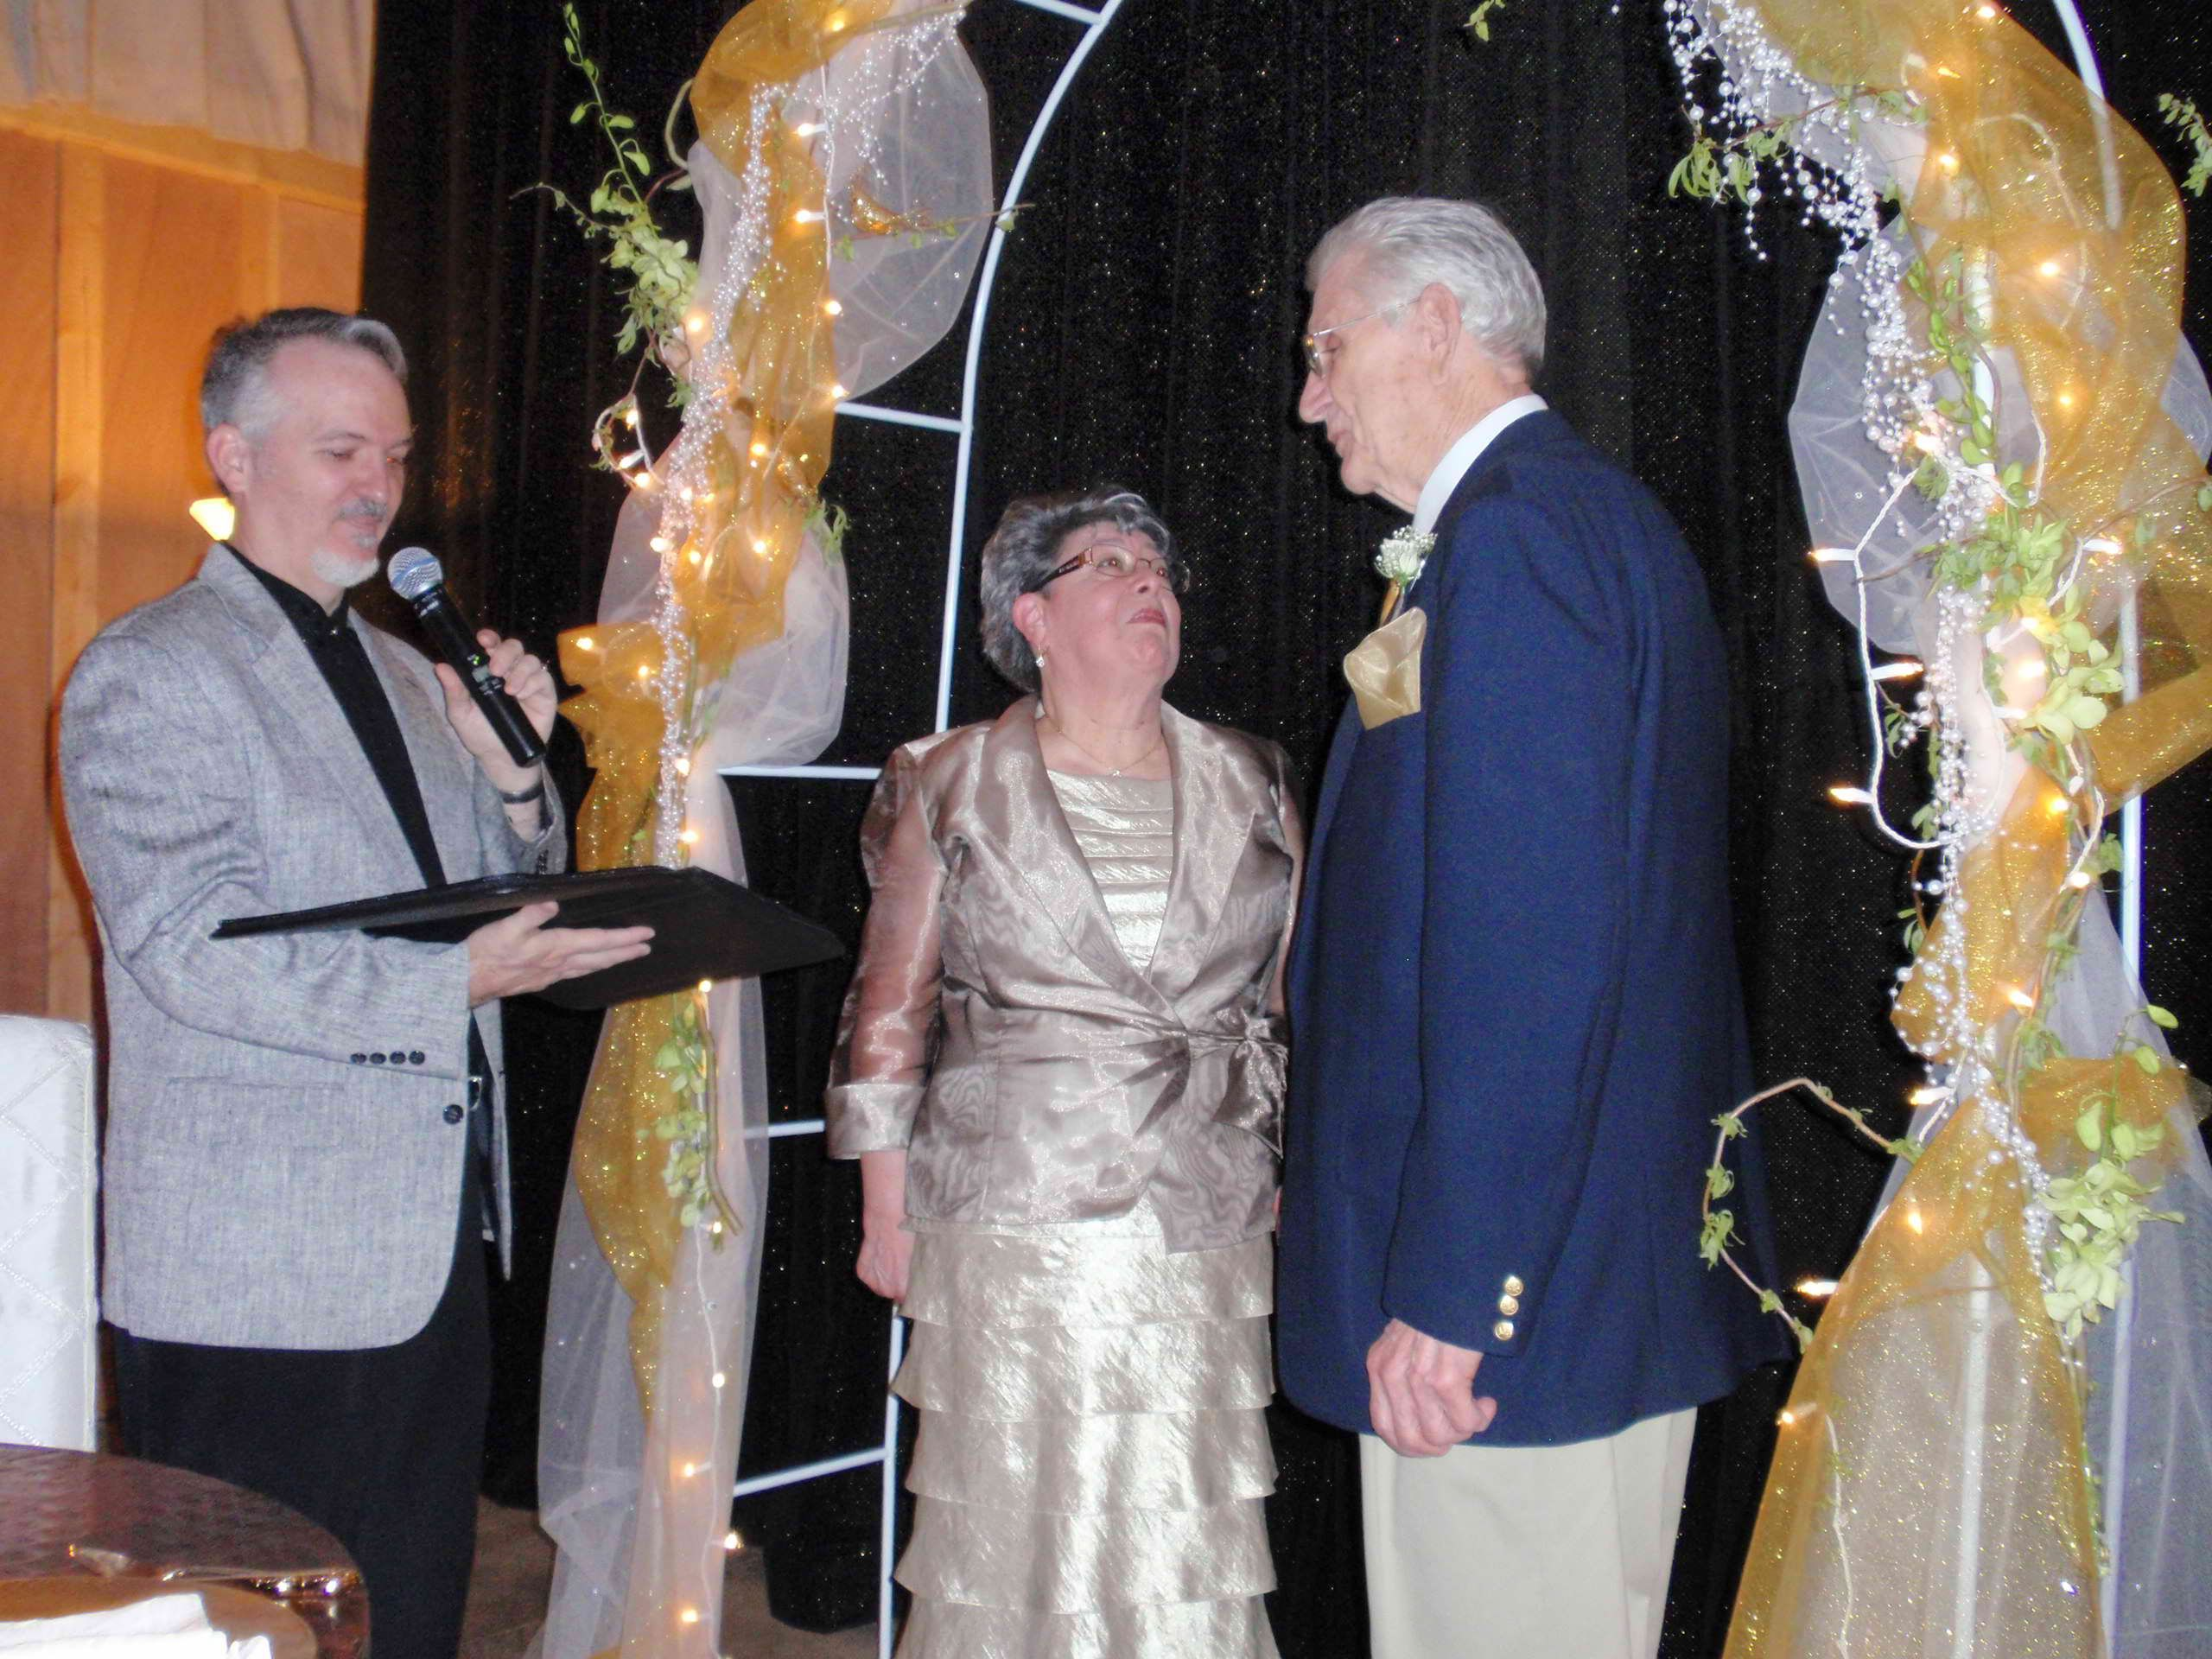 We purchased an inexpensive arch and my brother-in-law made stands to make it free-standing.  Mom and Dad did not know they would be renewing their vows.  The pastor is George Parker from Penn Valley, CA. He was personable and loving with a great sense of humor!